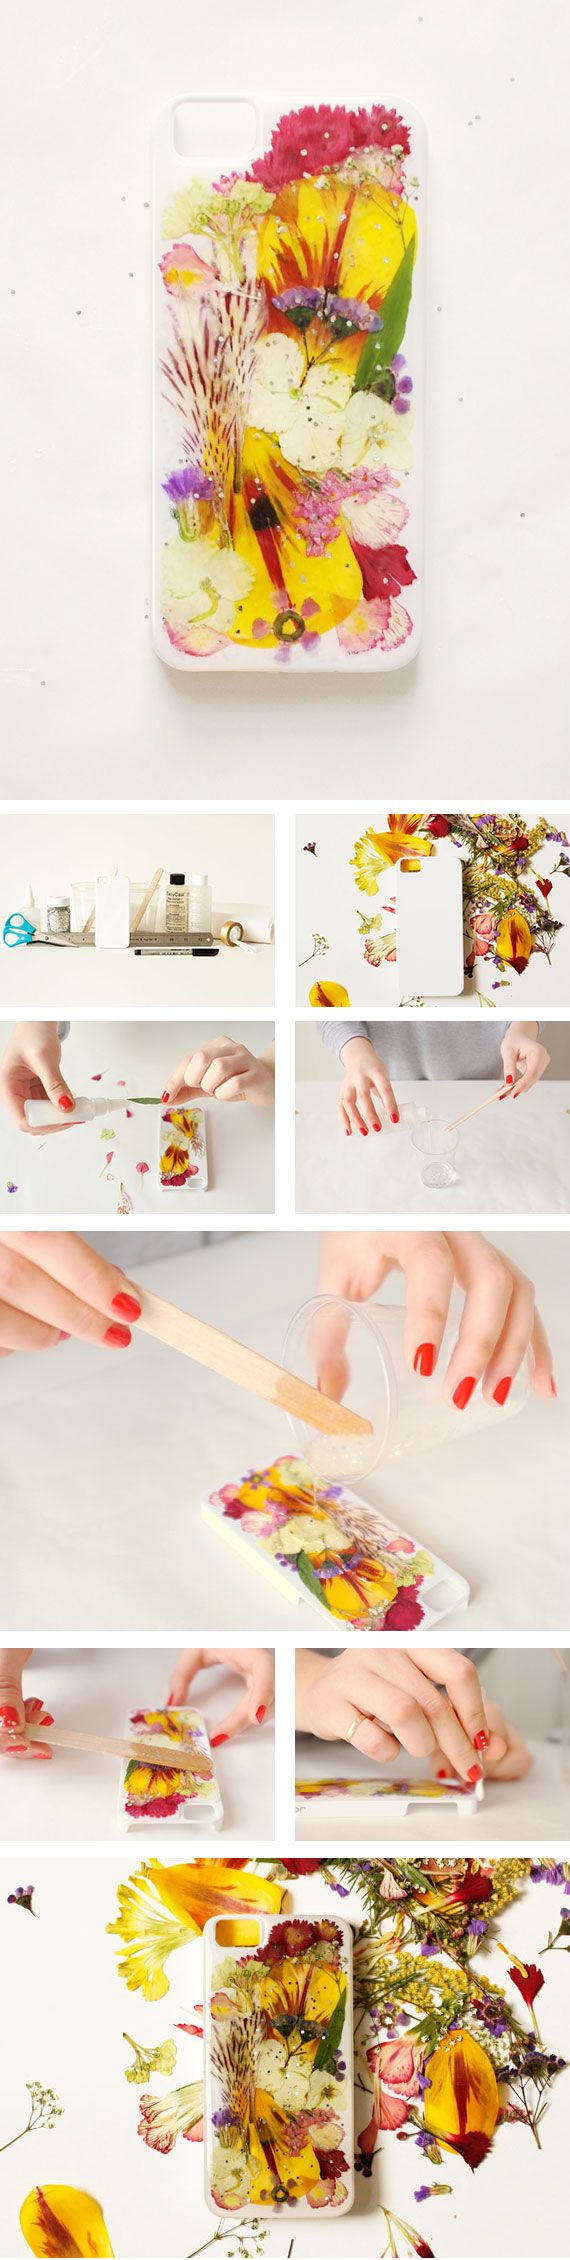 25 DIY Ways To Dress Up Your iPhone Case-homesthetics (26)